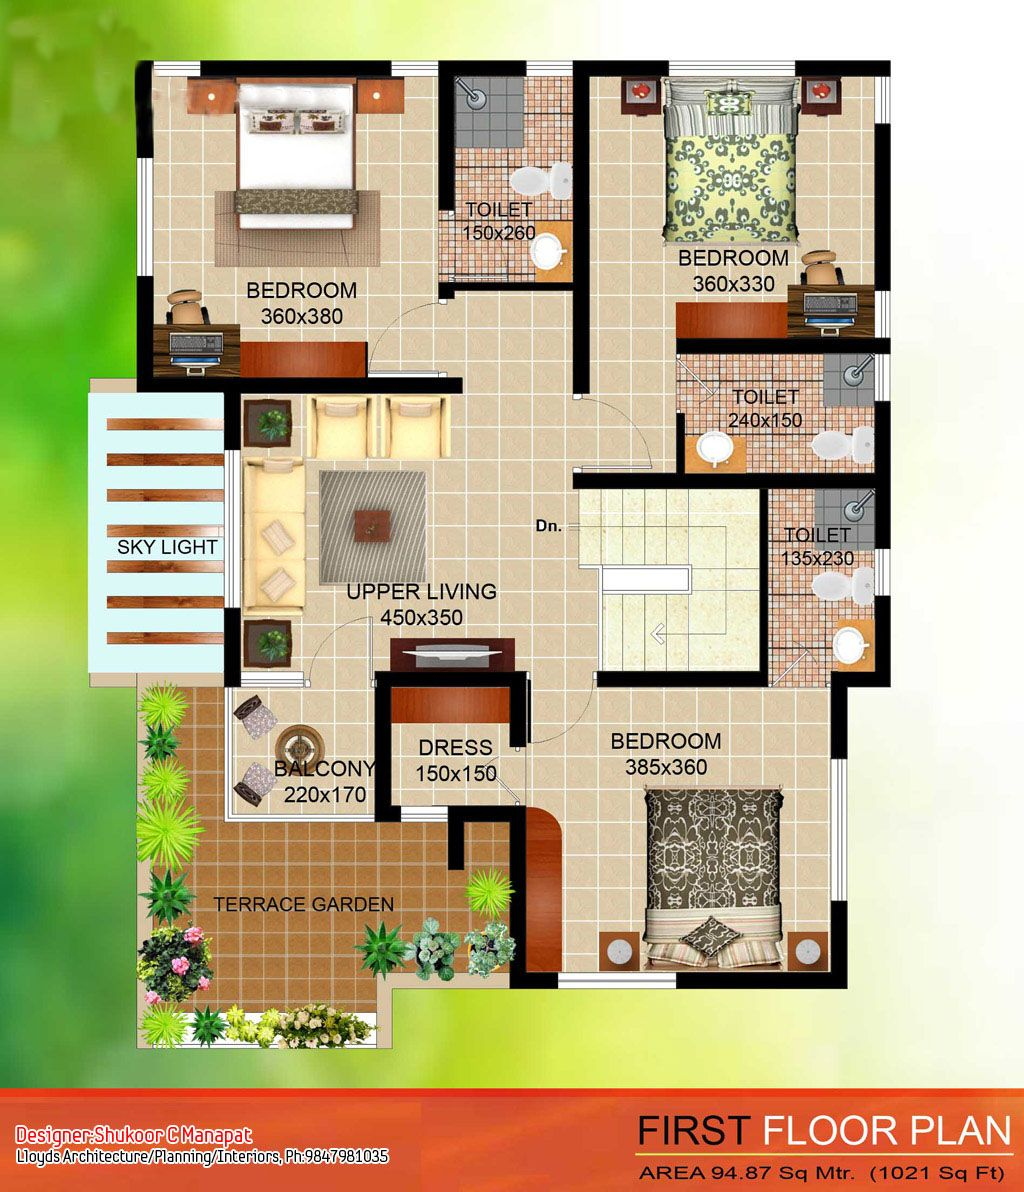 5 Lakh Home Design Part - 15: 4-bedroom-house-kerala-floor-plan-l-f4a6b5527832fcd5.